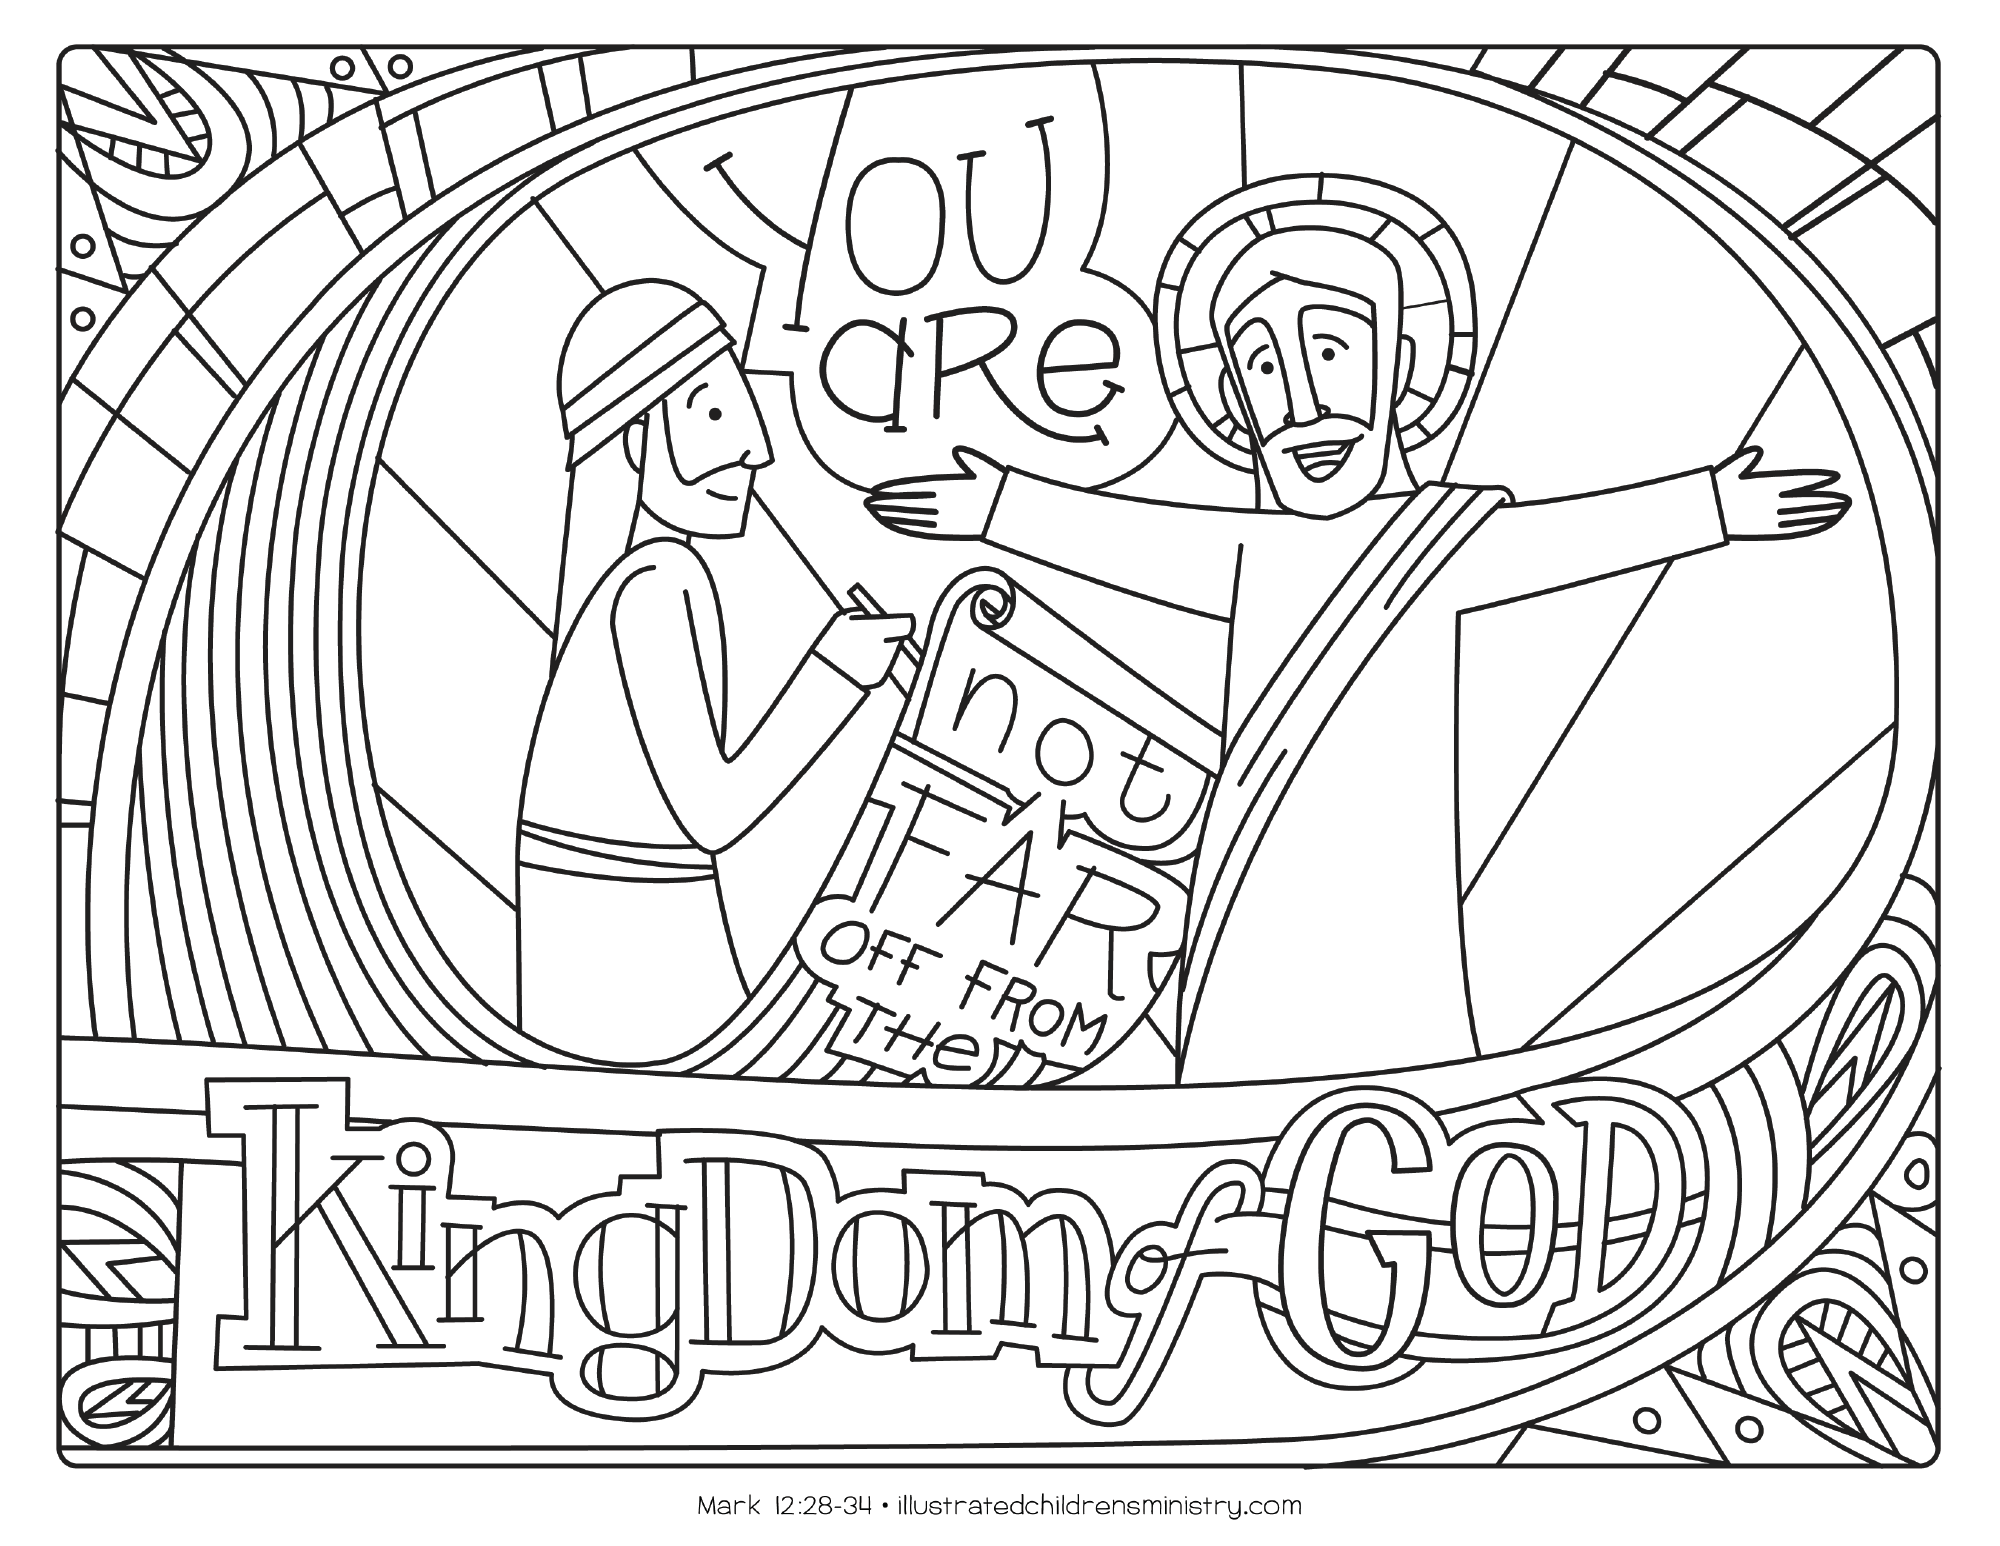 Bible Story Coloring Pages: Fall 2018 - Illustrated Ministry